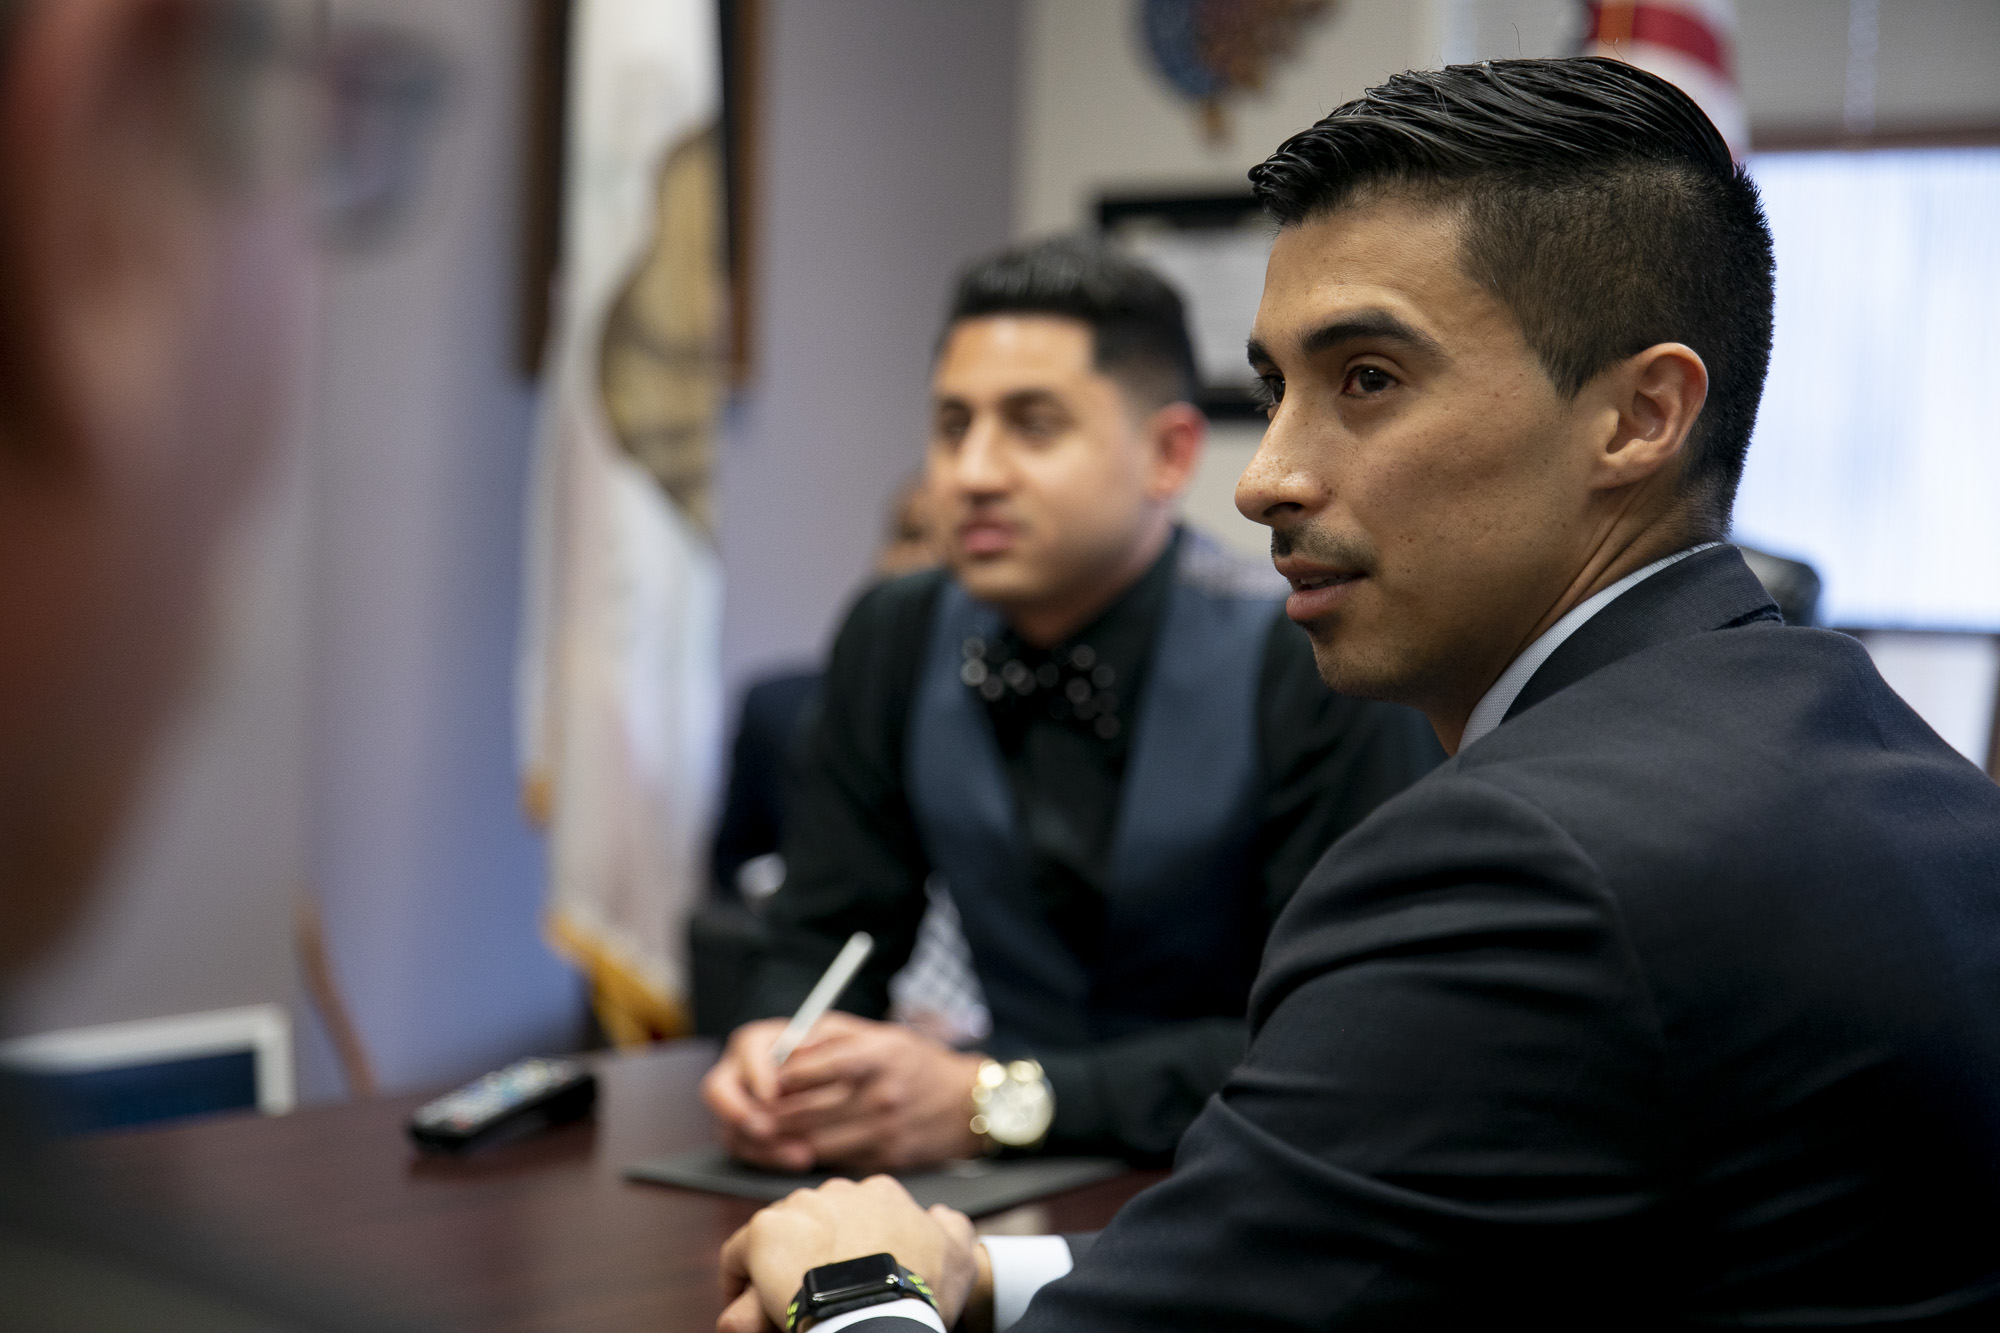 Esteban Nunez speaks with a staffer from Sen. Ben Hueso's office during a meeting with members of a coalition of formerly incarcerated people to advocate for voting rights on March 9, 2020. Photo by Anne Wernikoff for CalMatters